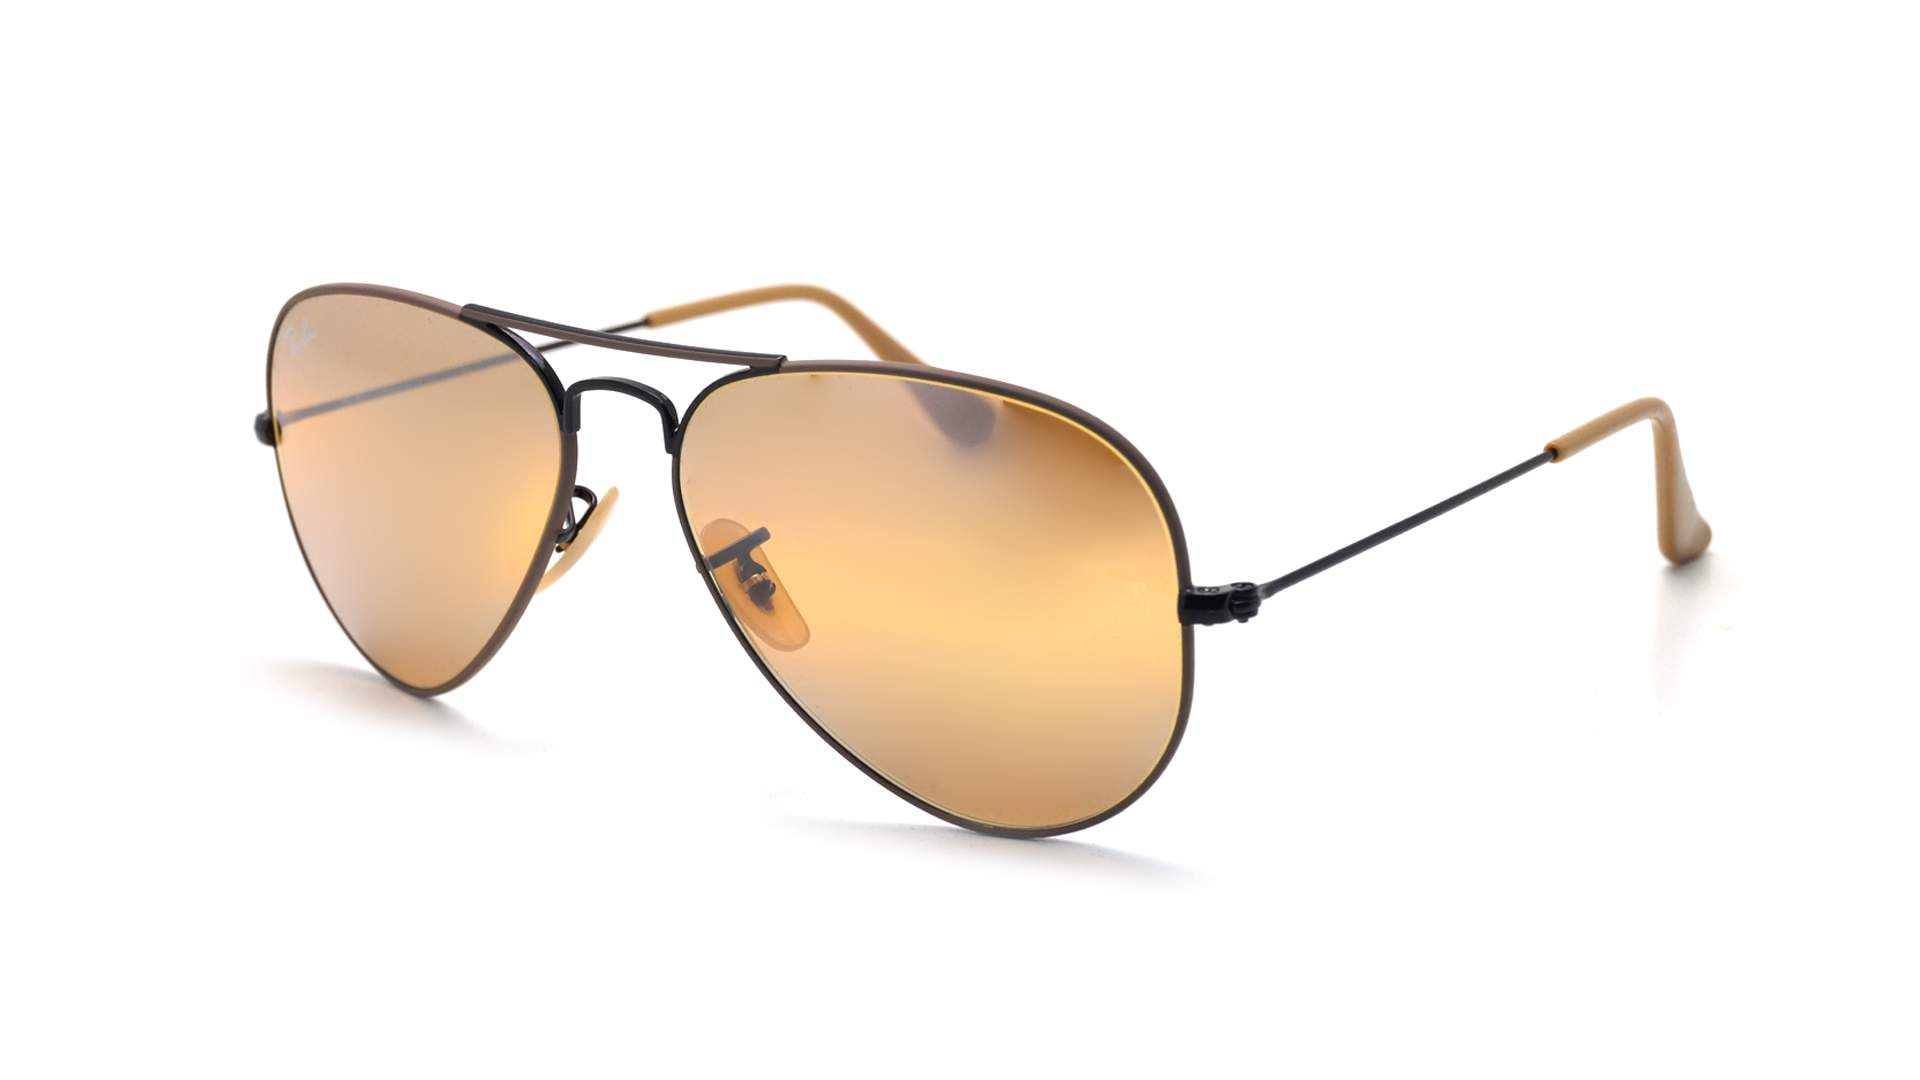 9fb5fa764 Sunglasses Ray-Ban Aviator Mirror Brown Mat RB3025 9153/AG 55-18 Small  Gradient Flash